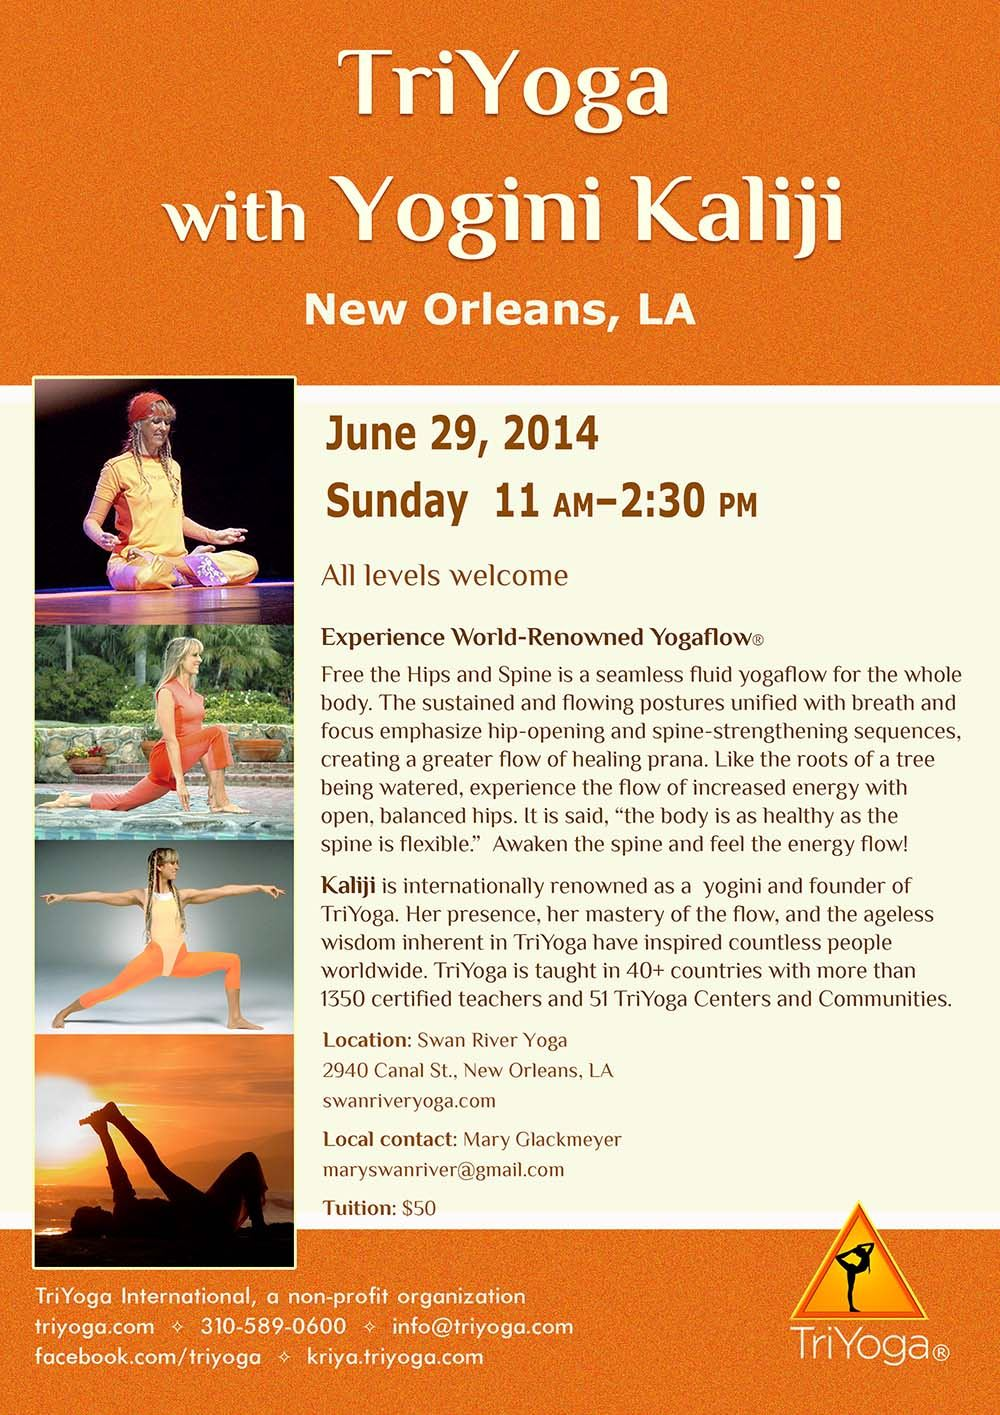 TriYoga with Yogini Kaliji in New Orleans